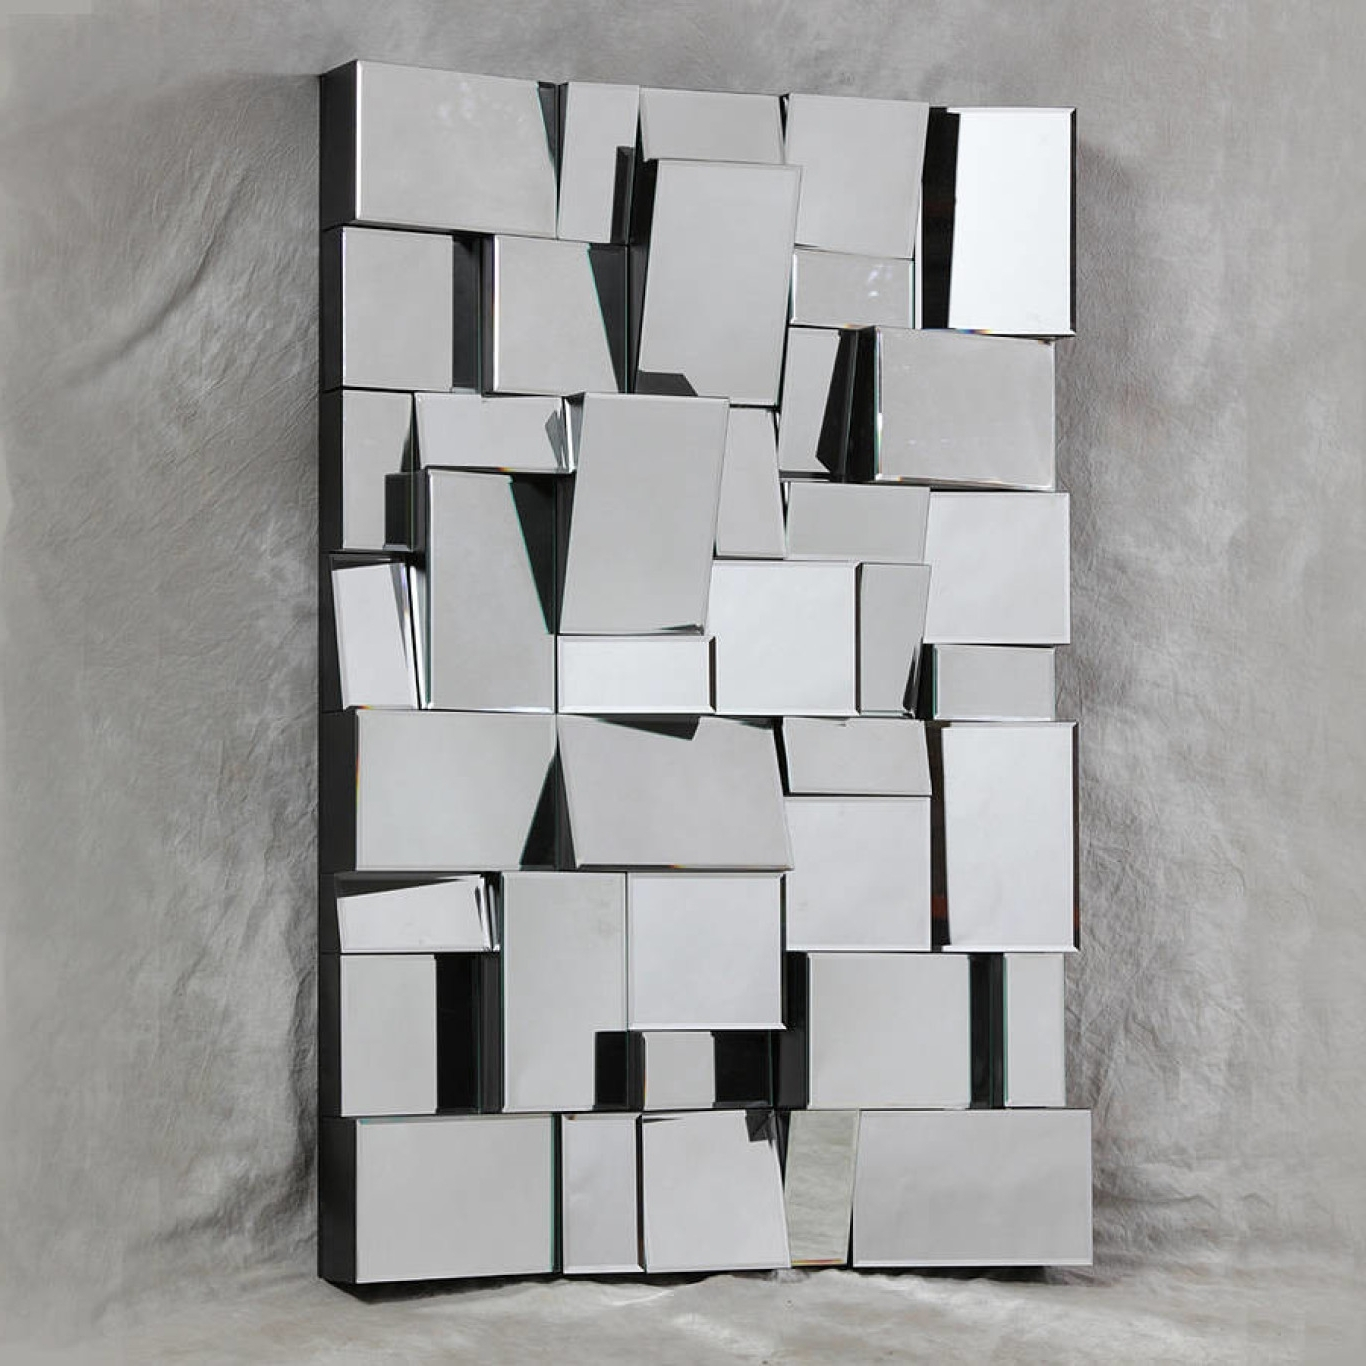 Newest Mirrored Wall Art Within Mirrors As Wall Superb Mirrored Wall Art – Prix Dalle Beton (View 12 of 20)